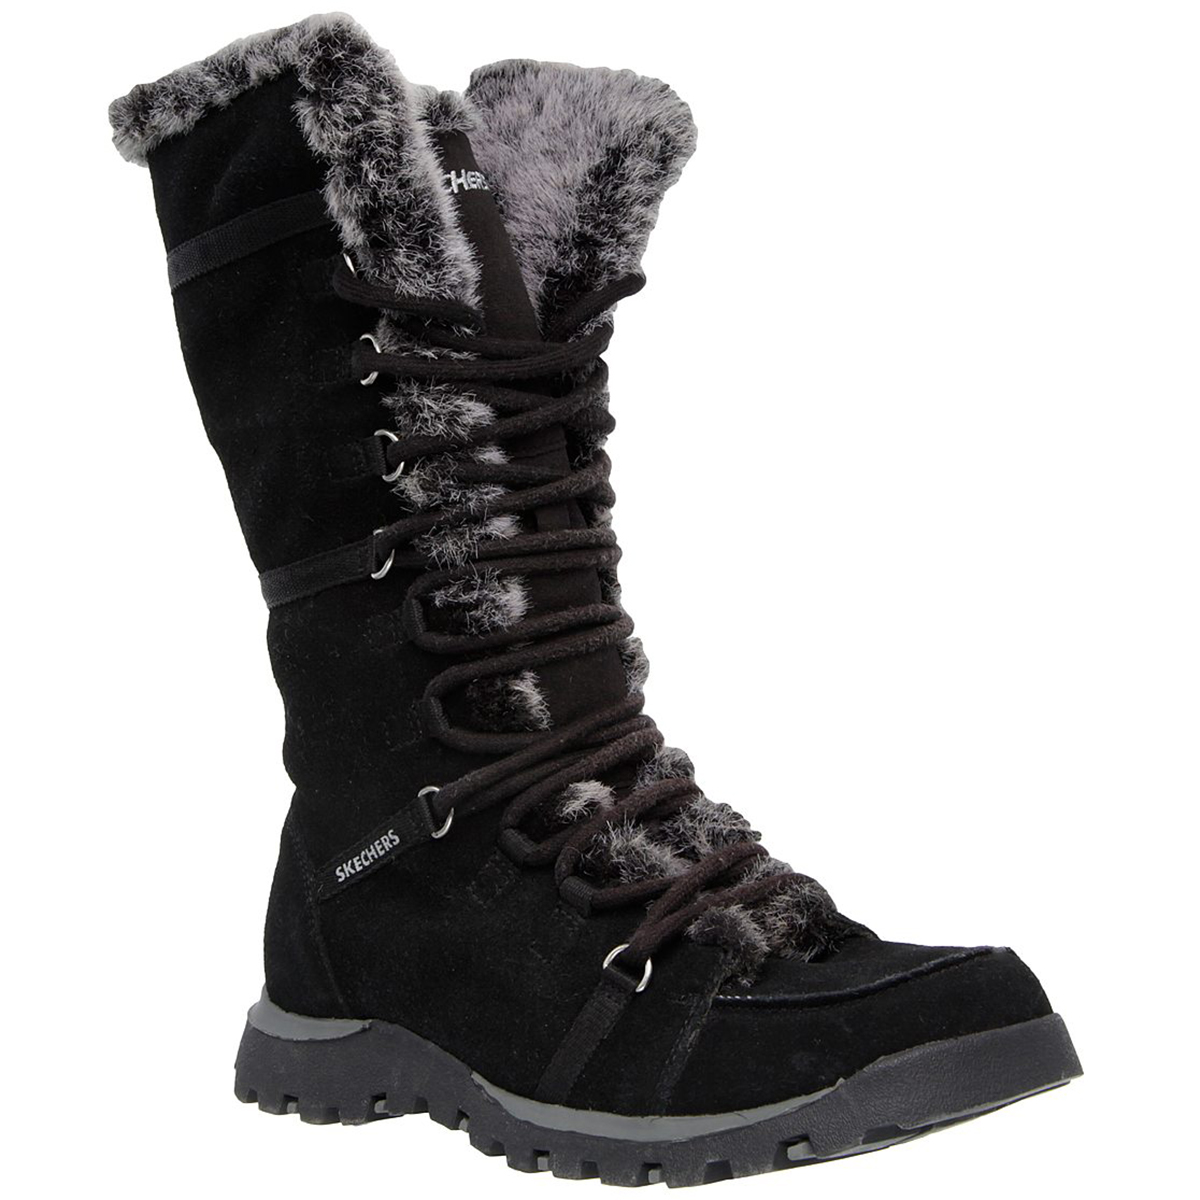 Skechers Women's Grand Jams Unlimited Lace Up Boots - Black, 8.5